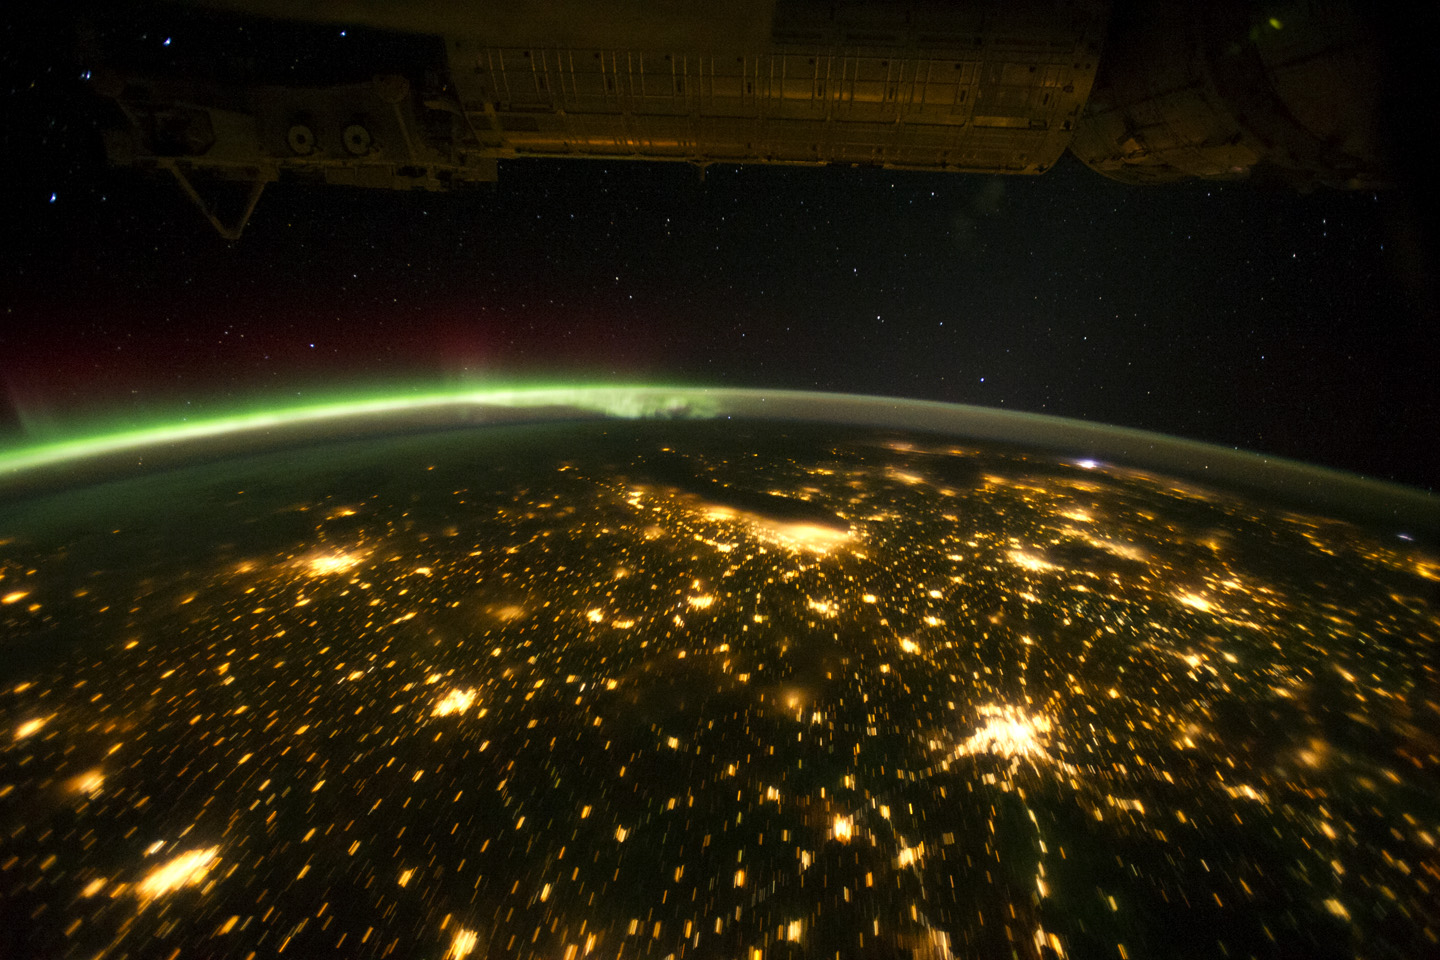 Earth 39 s cities at night photos from space for When was space made